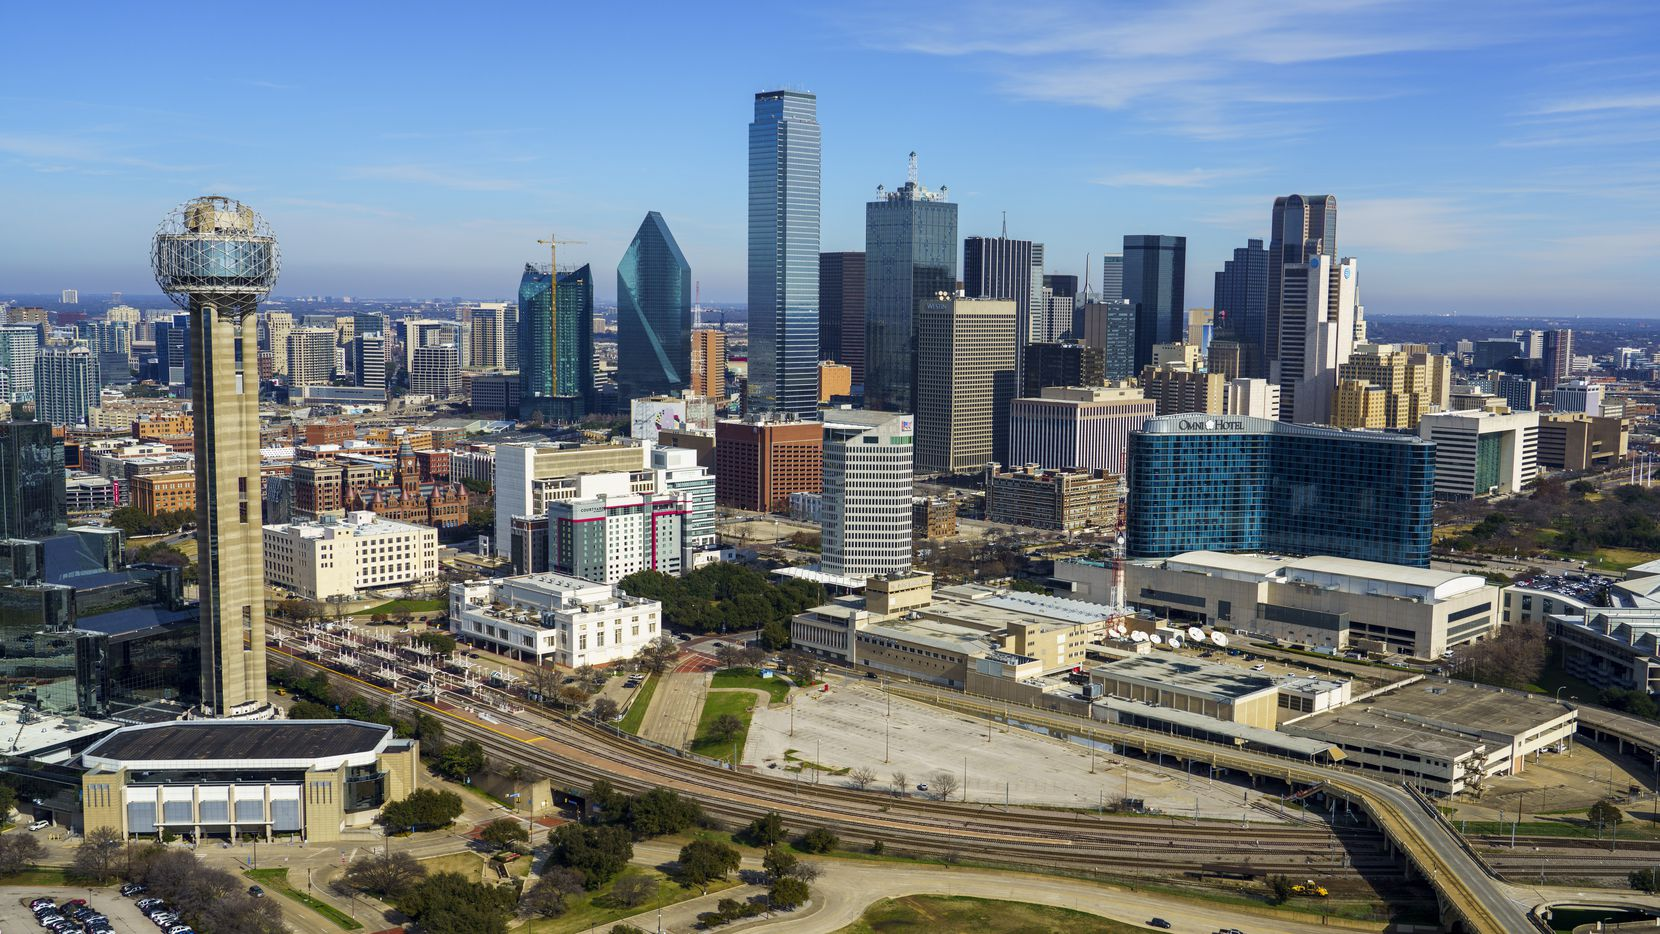 The D-FW property market has traditionally fared well in the annual real estate outlook report by the Urban Land Institute and PriceWaterhouse Coopers.